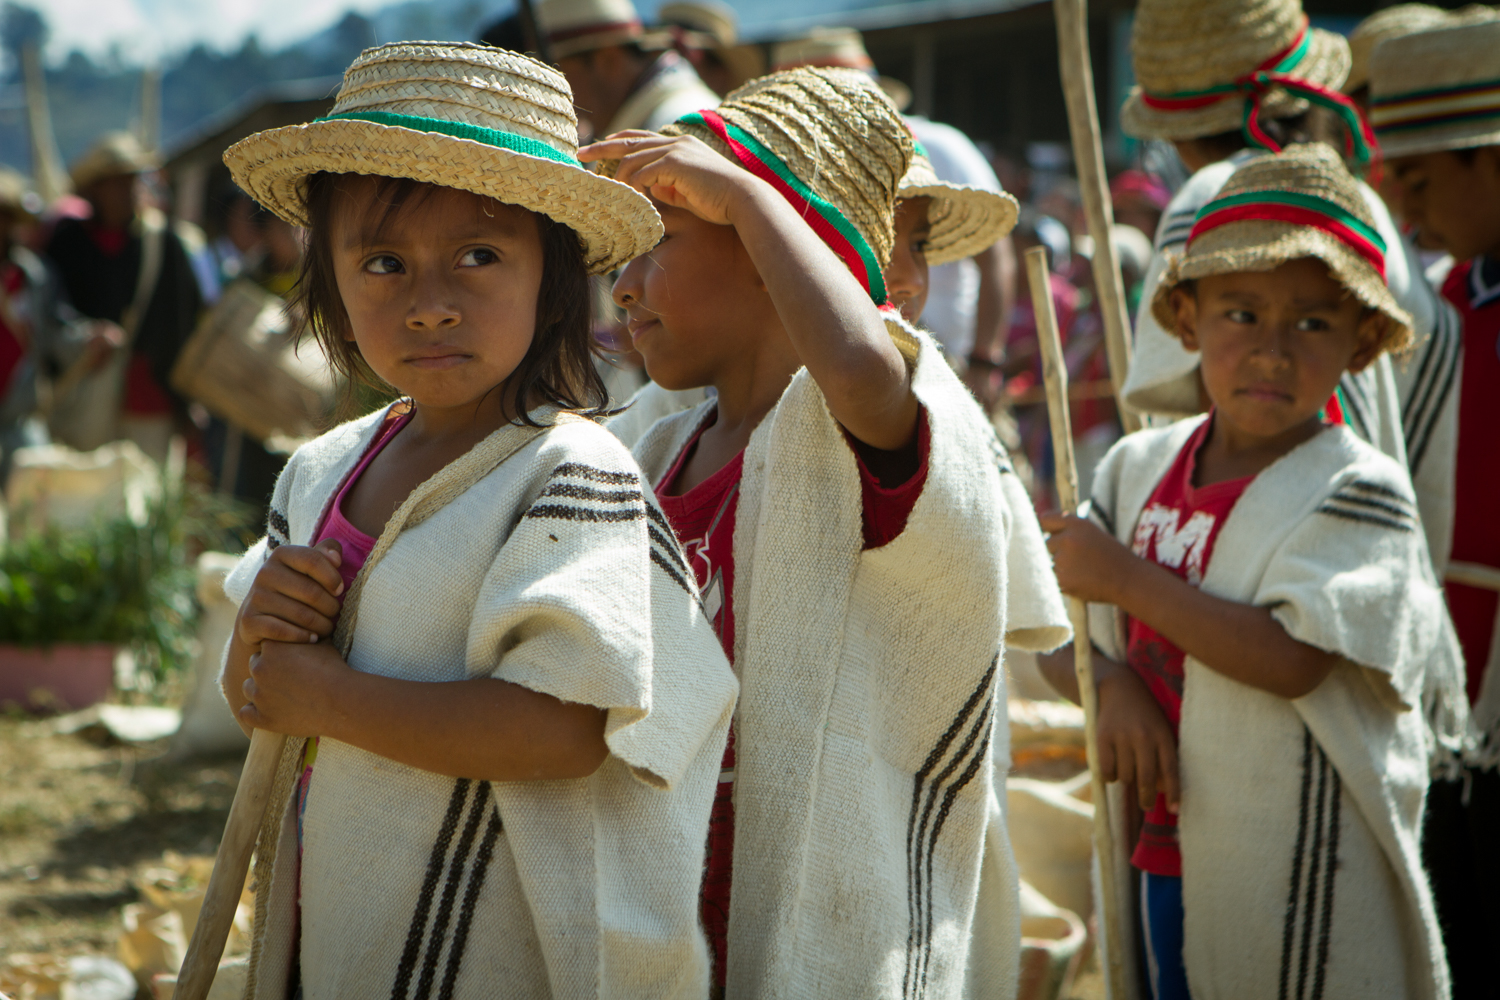 YDid Colombia Miss Its Chance for Peace?